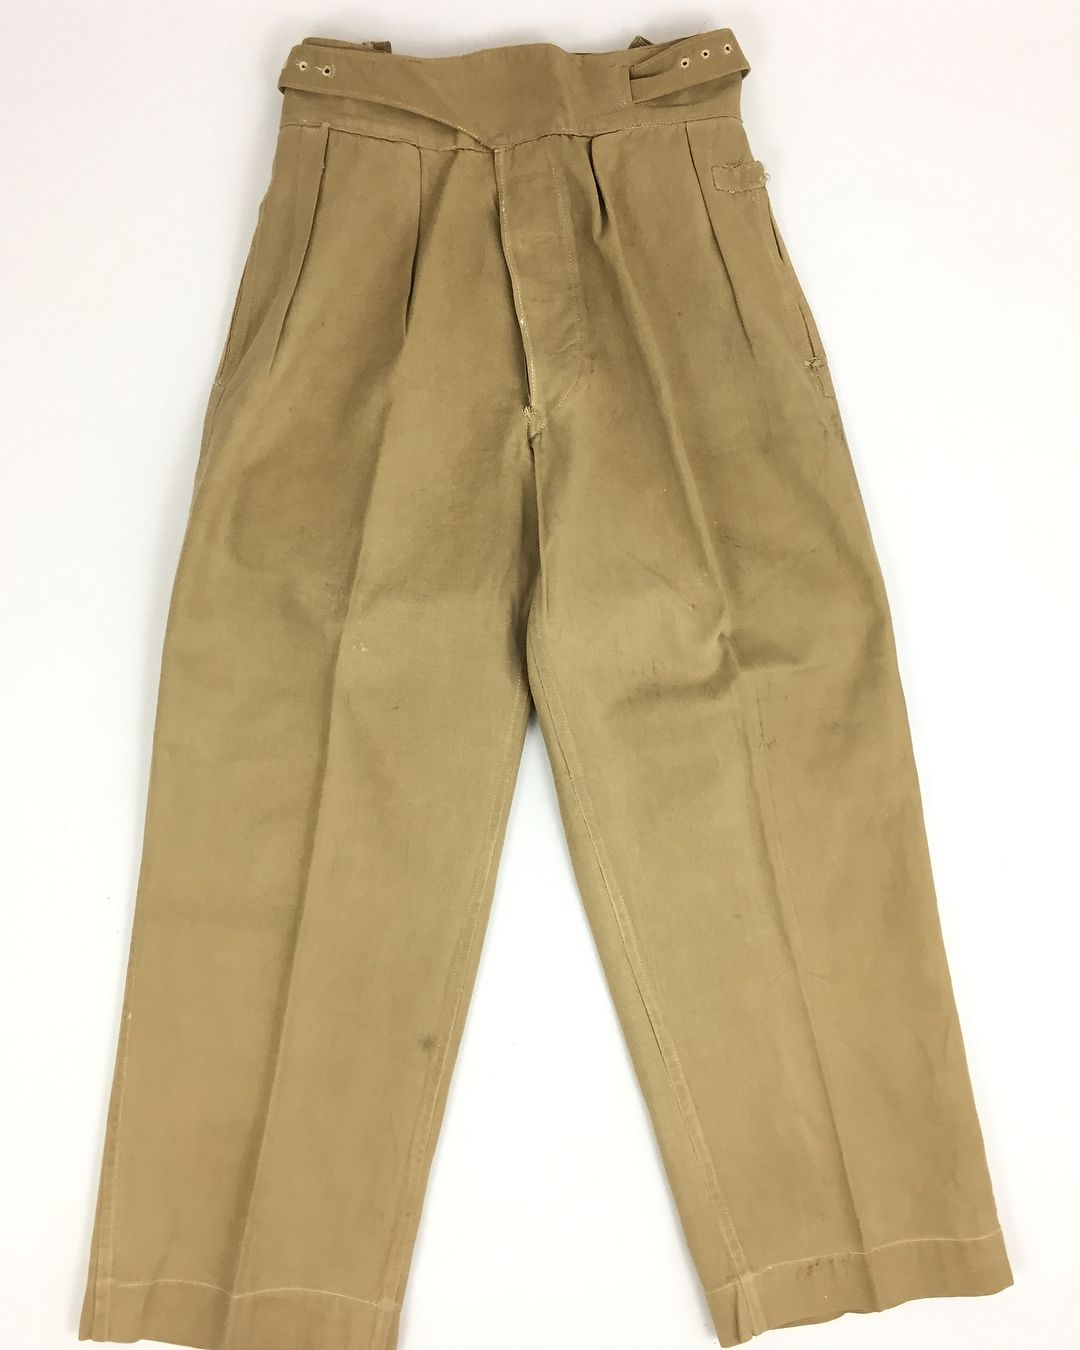 1945 Dated RAF KD Trousers sold recently on Blighty